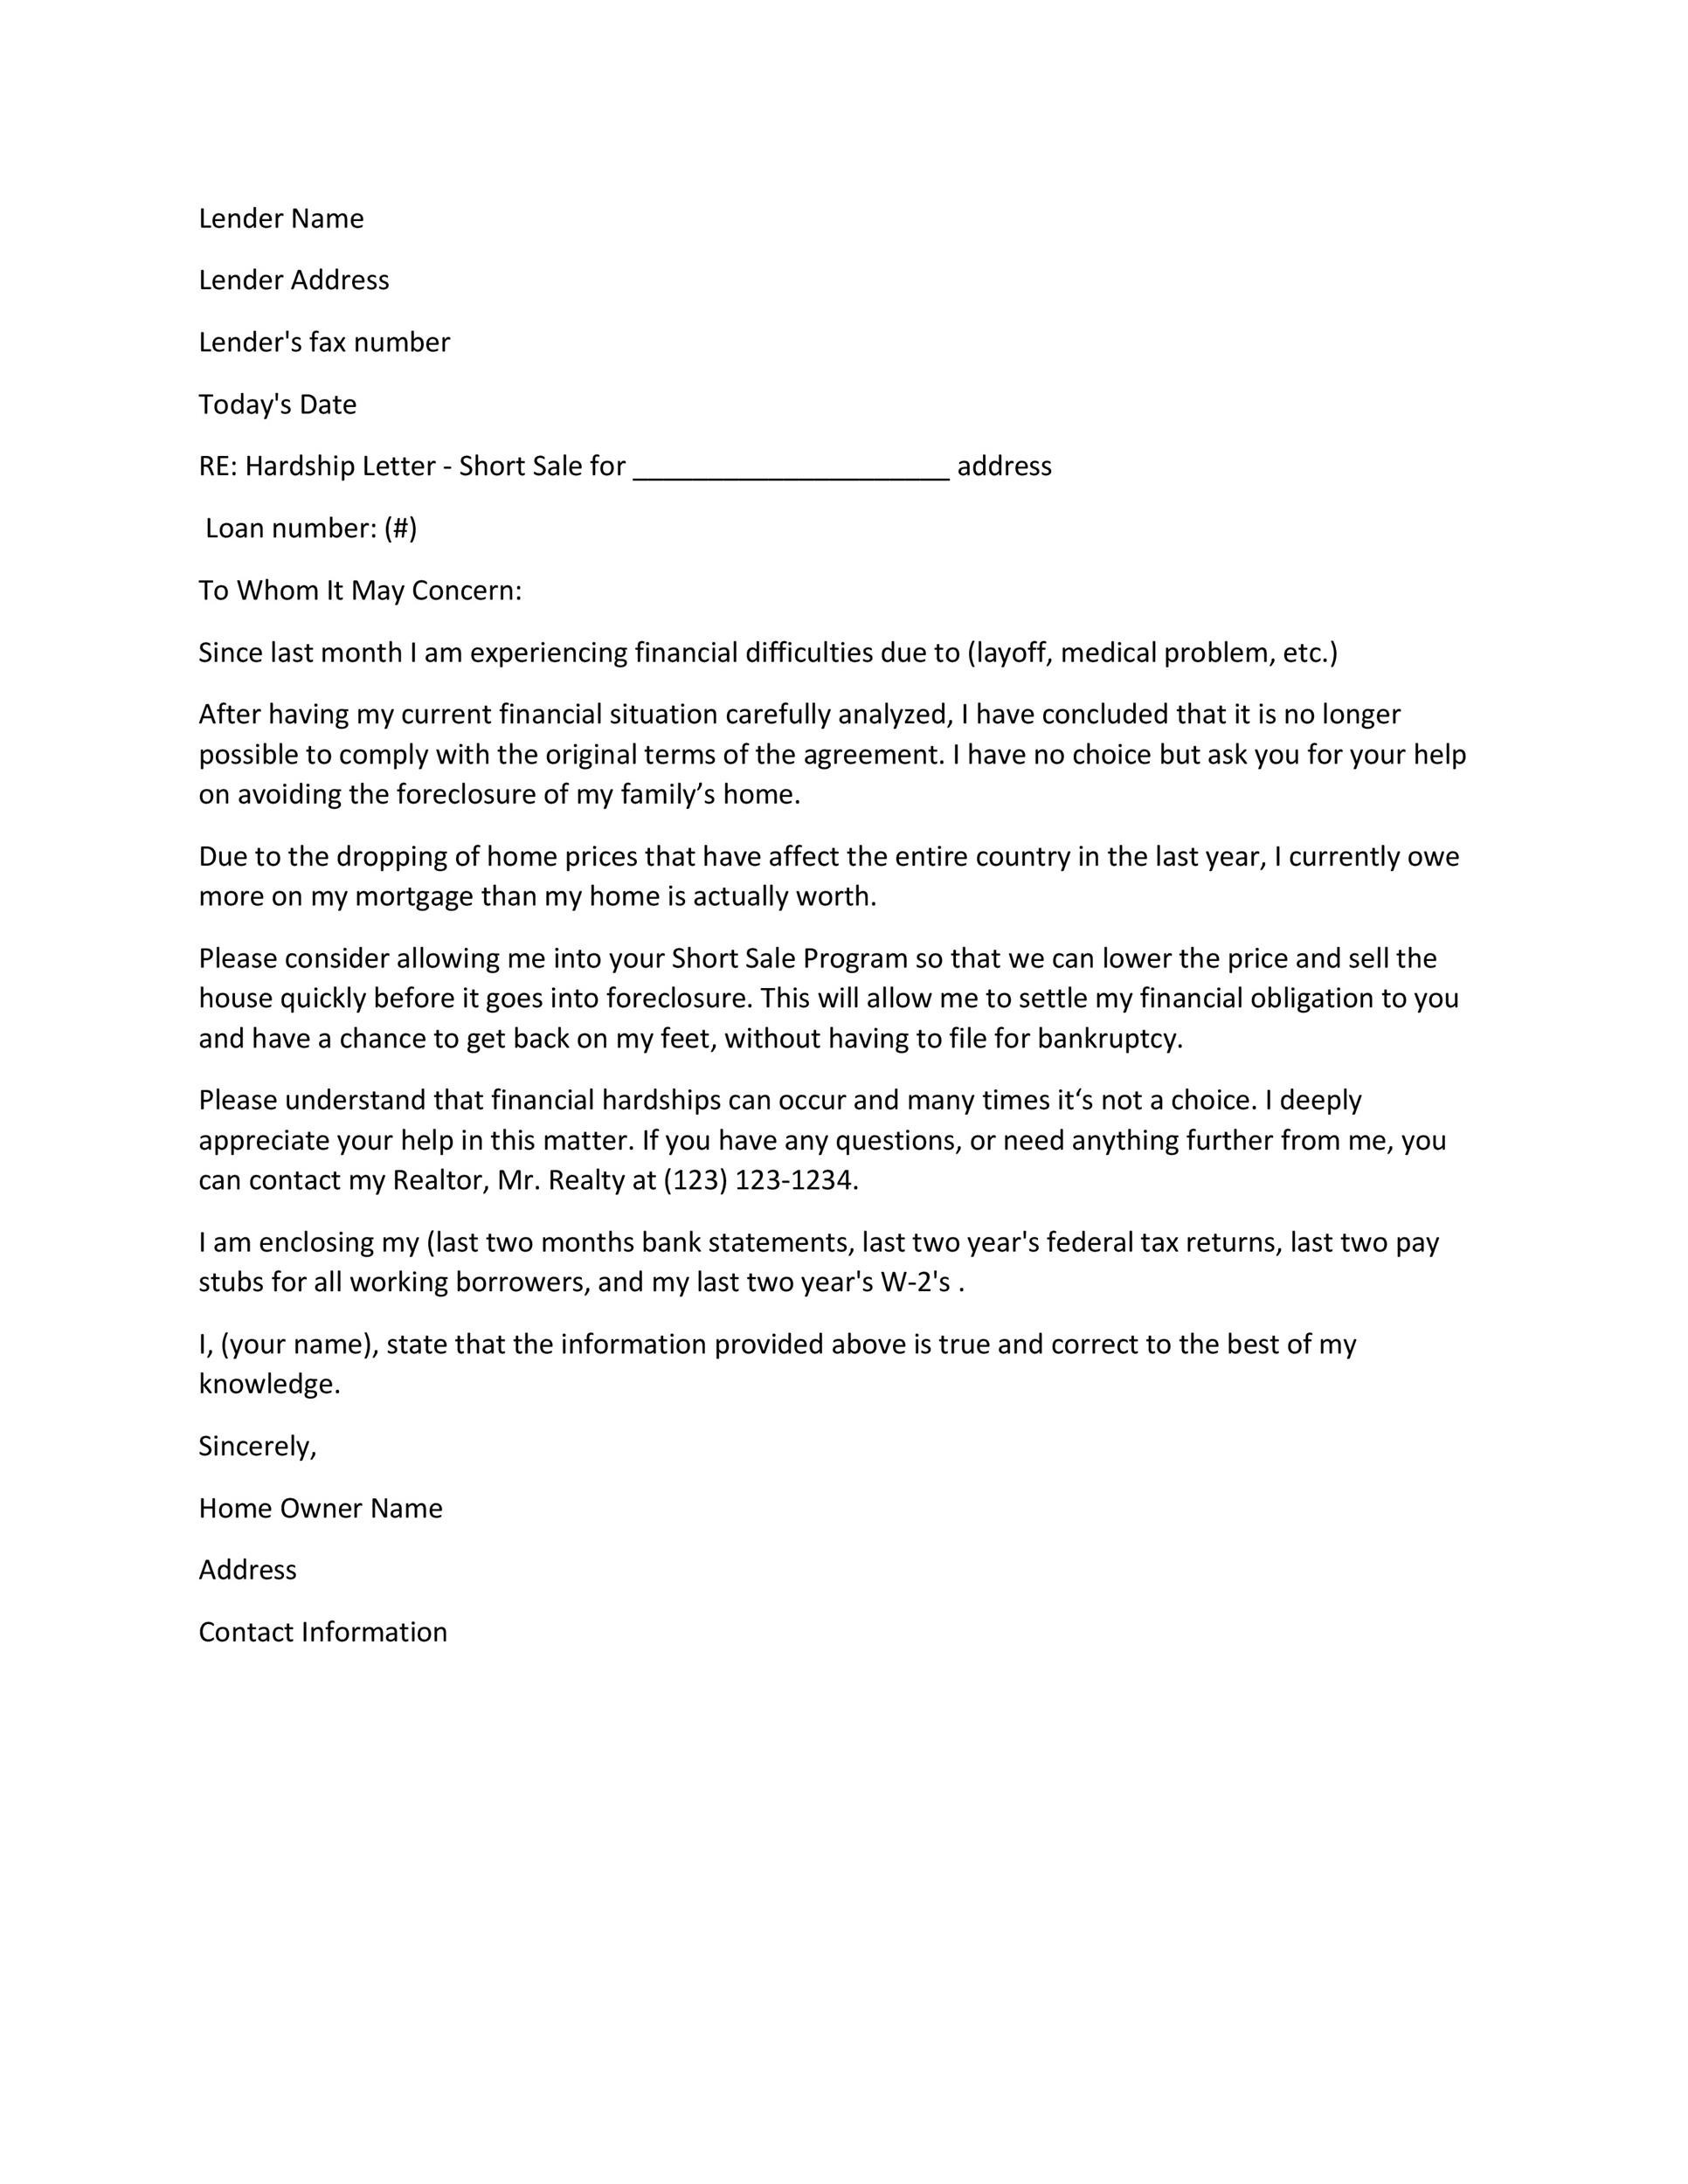 New Letter Template To A Judge Images  Complete Letter Template